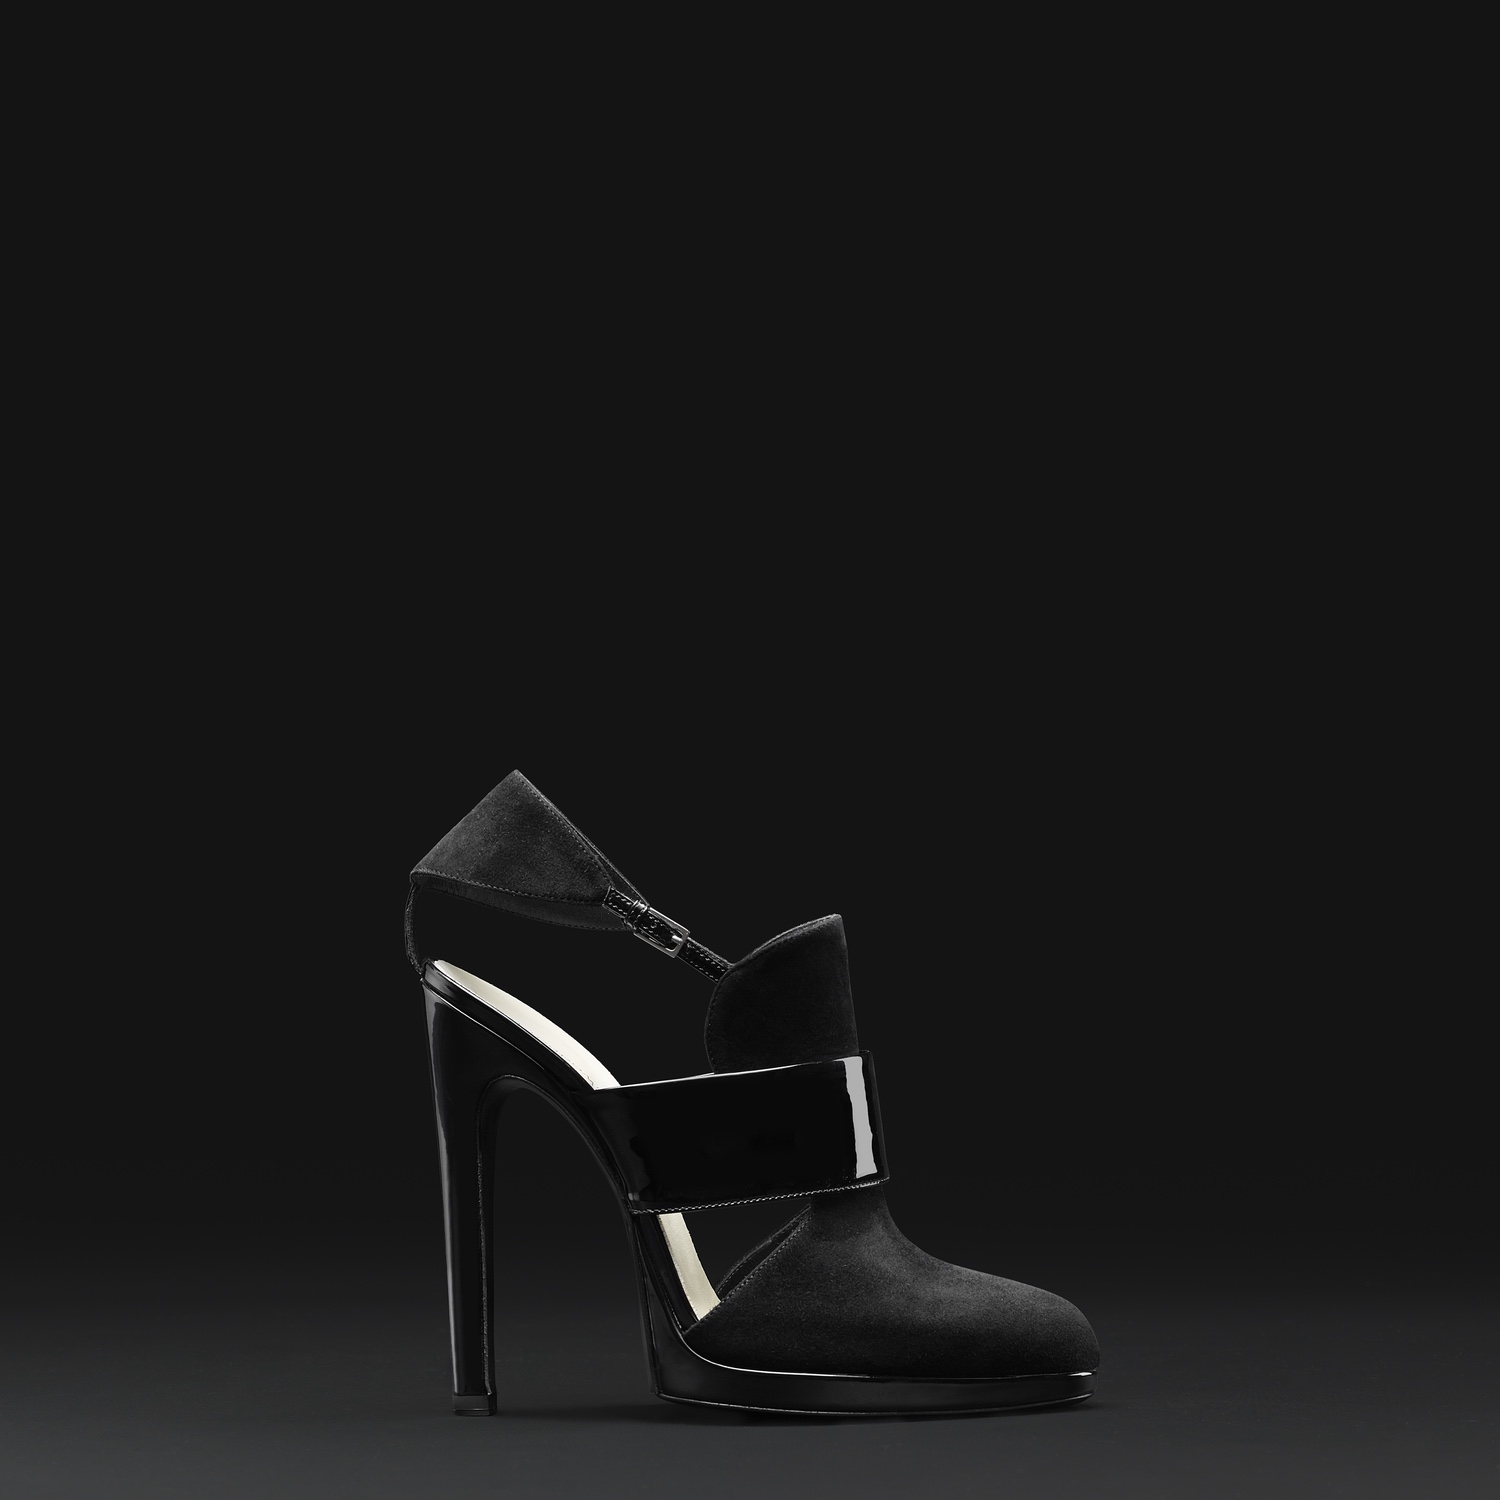 ALAINTONDOWSKI_FALLWINTER2015_SHOES_AT061-B